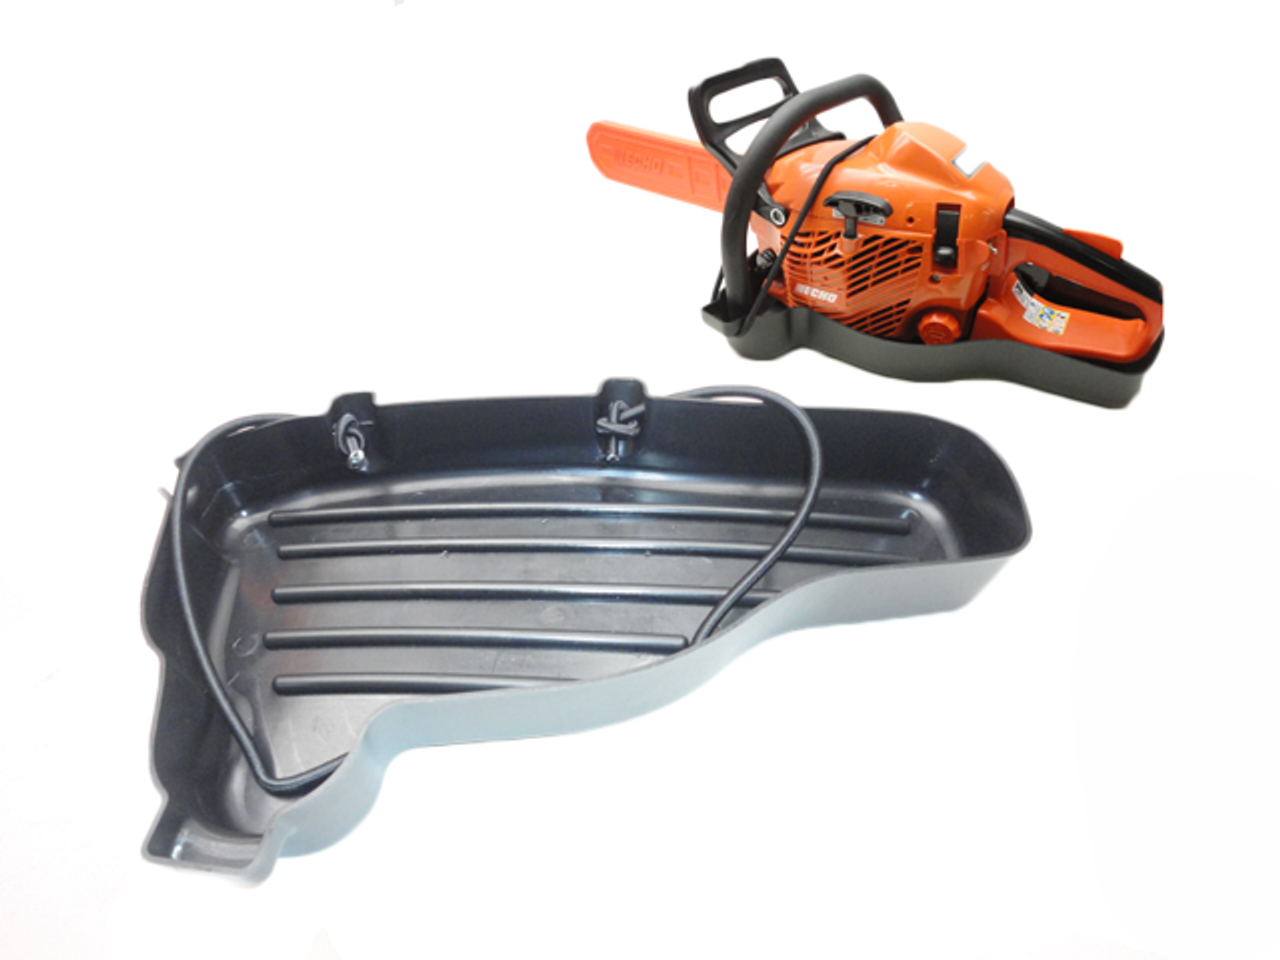 Chainsaw Carry Tote And Storage Tray For Saws Under 45Cc